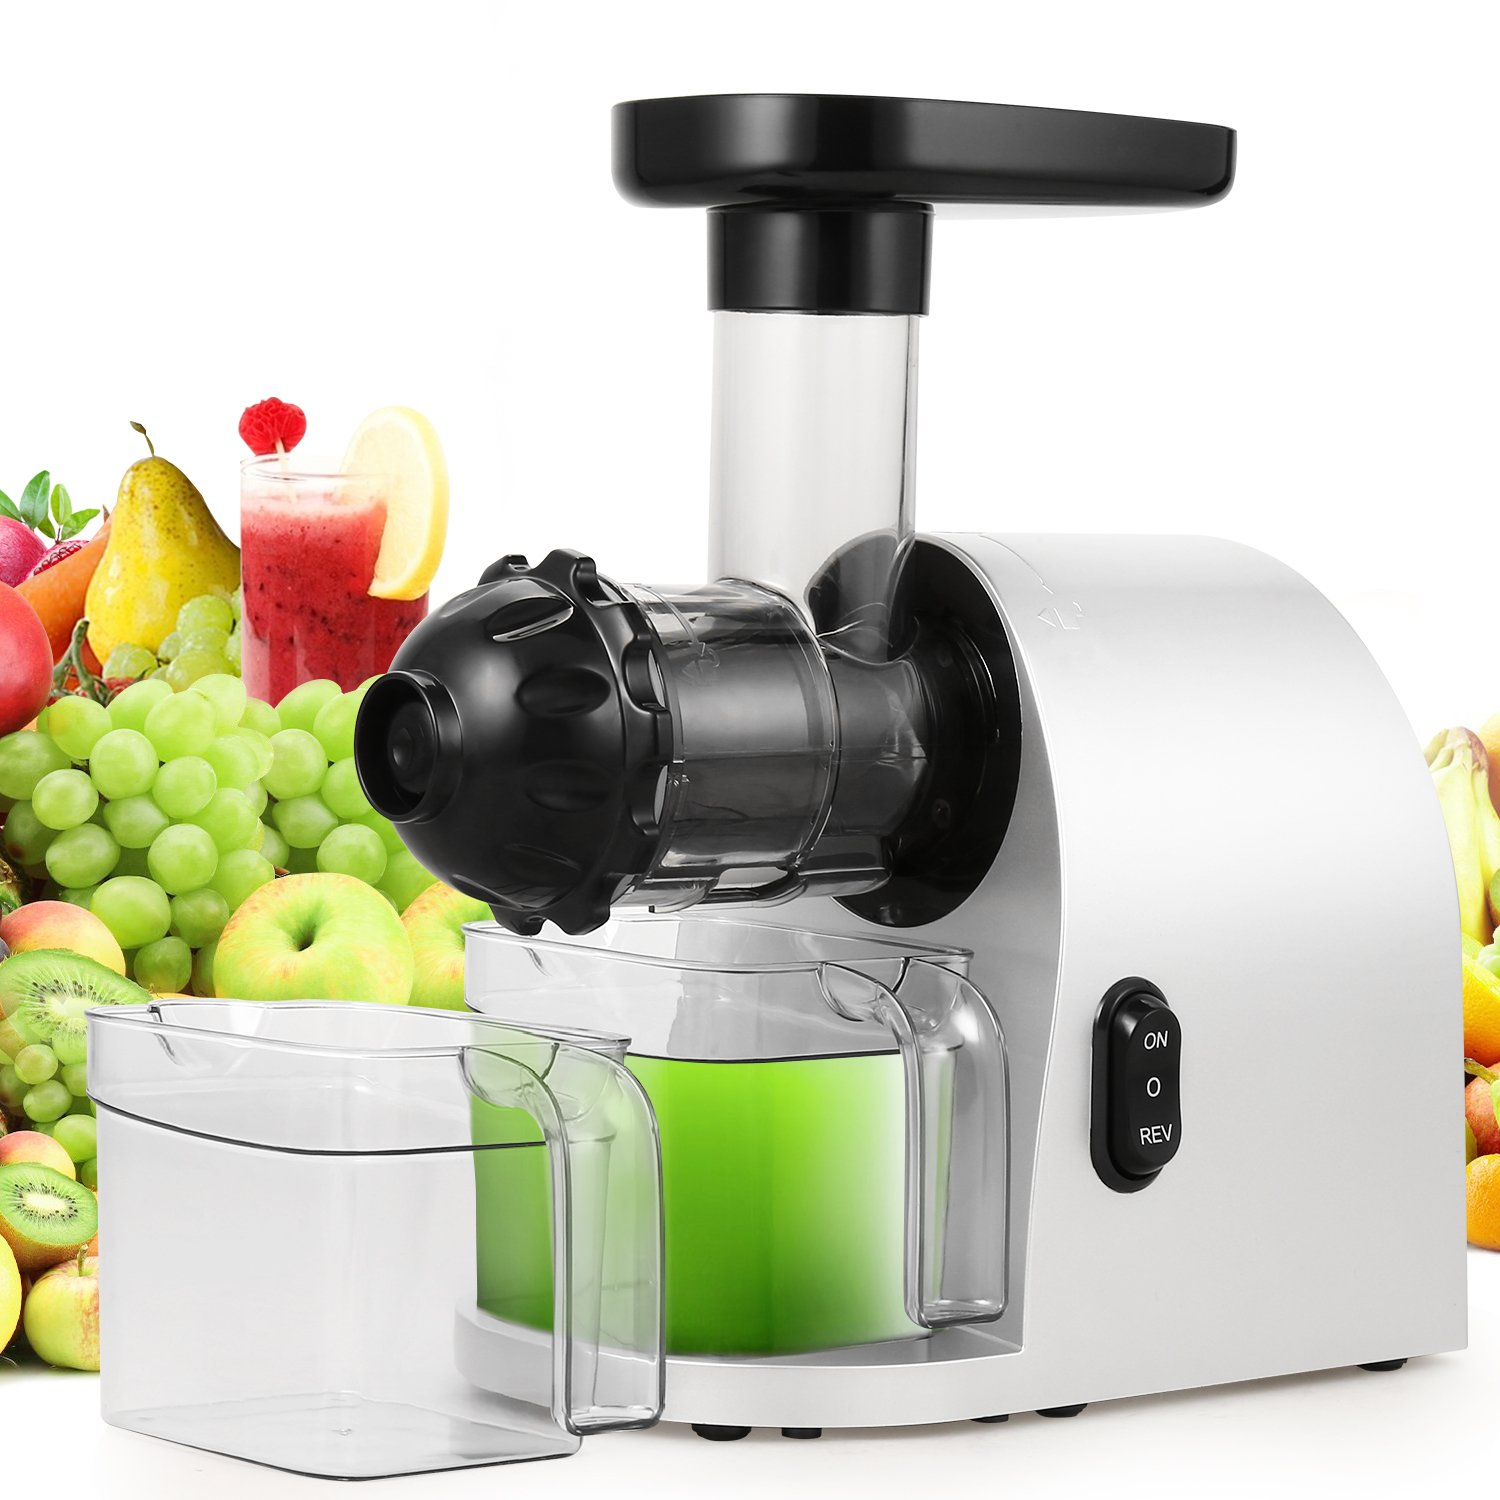 Slow Masticating Juicer Extractor, Cold Press Juicer Machine with Brush to Clean Conveniently High Nutrient Fruit and Vegetable Juice (Silver)